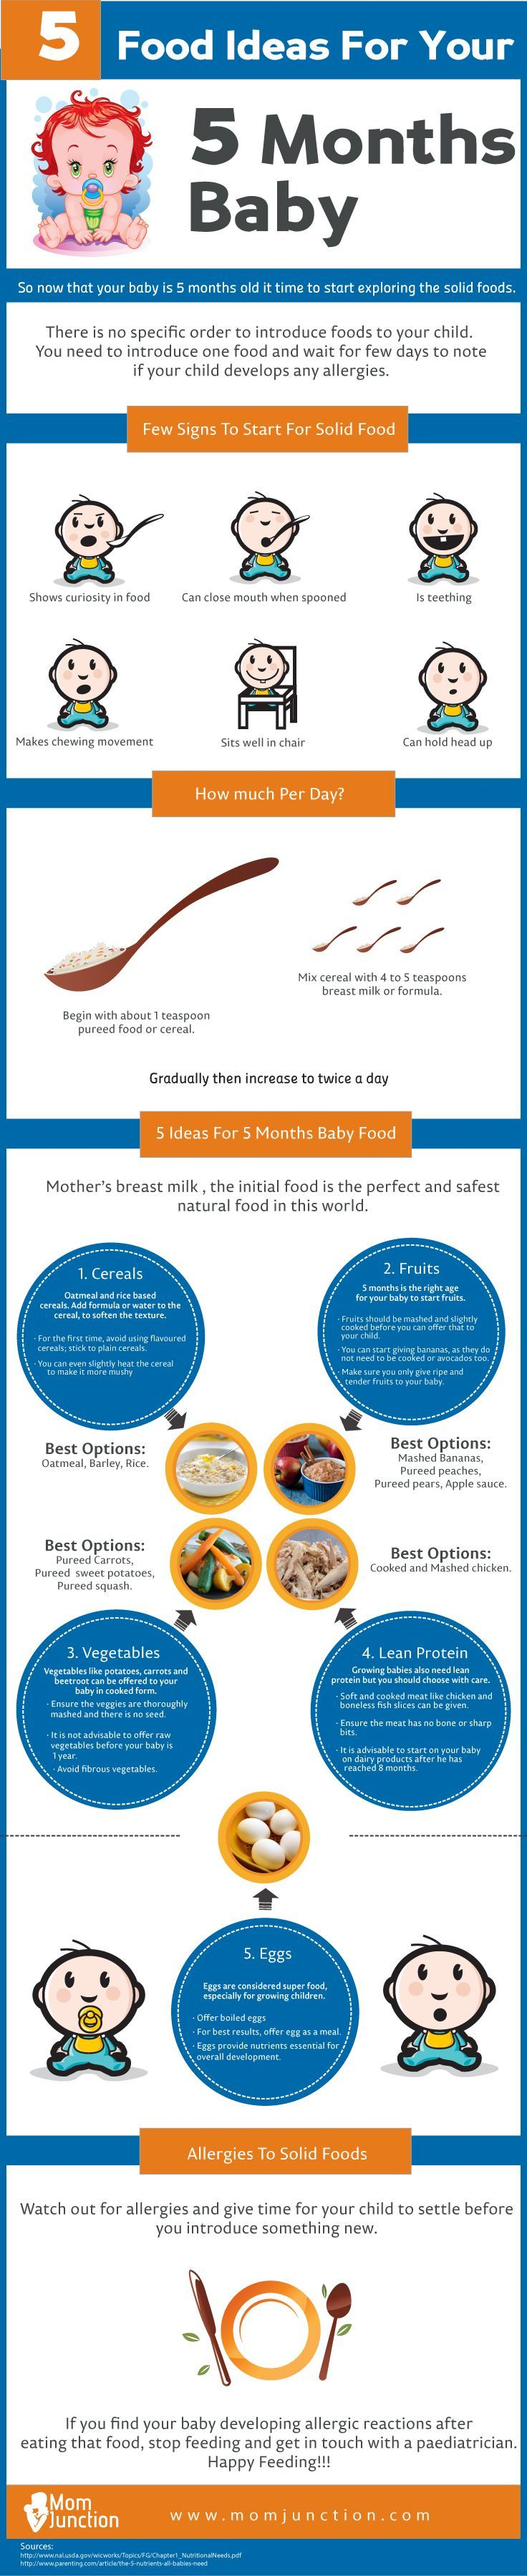 Is your baby 5 months old? Not sure about whether to start feeding them liquids or solids? Here we give you top 5 ideas for your 5 months baby food and more